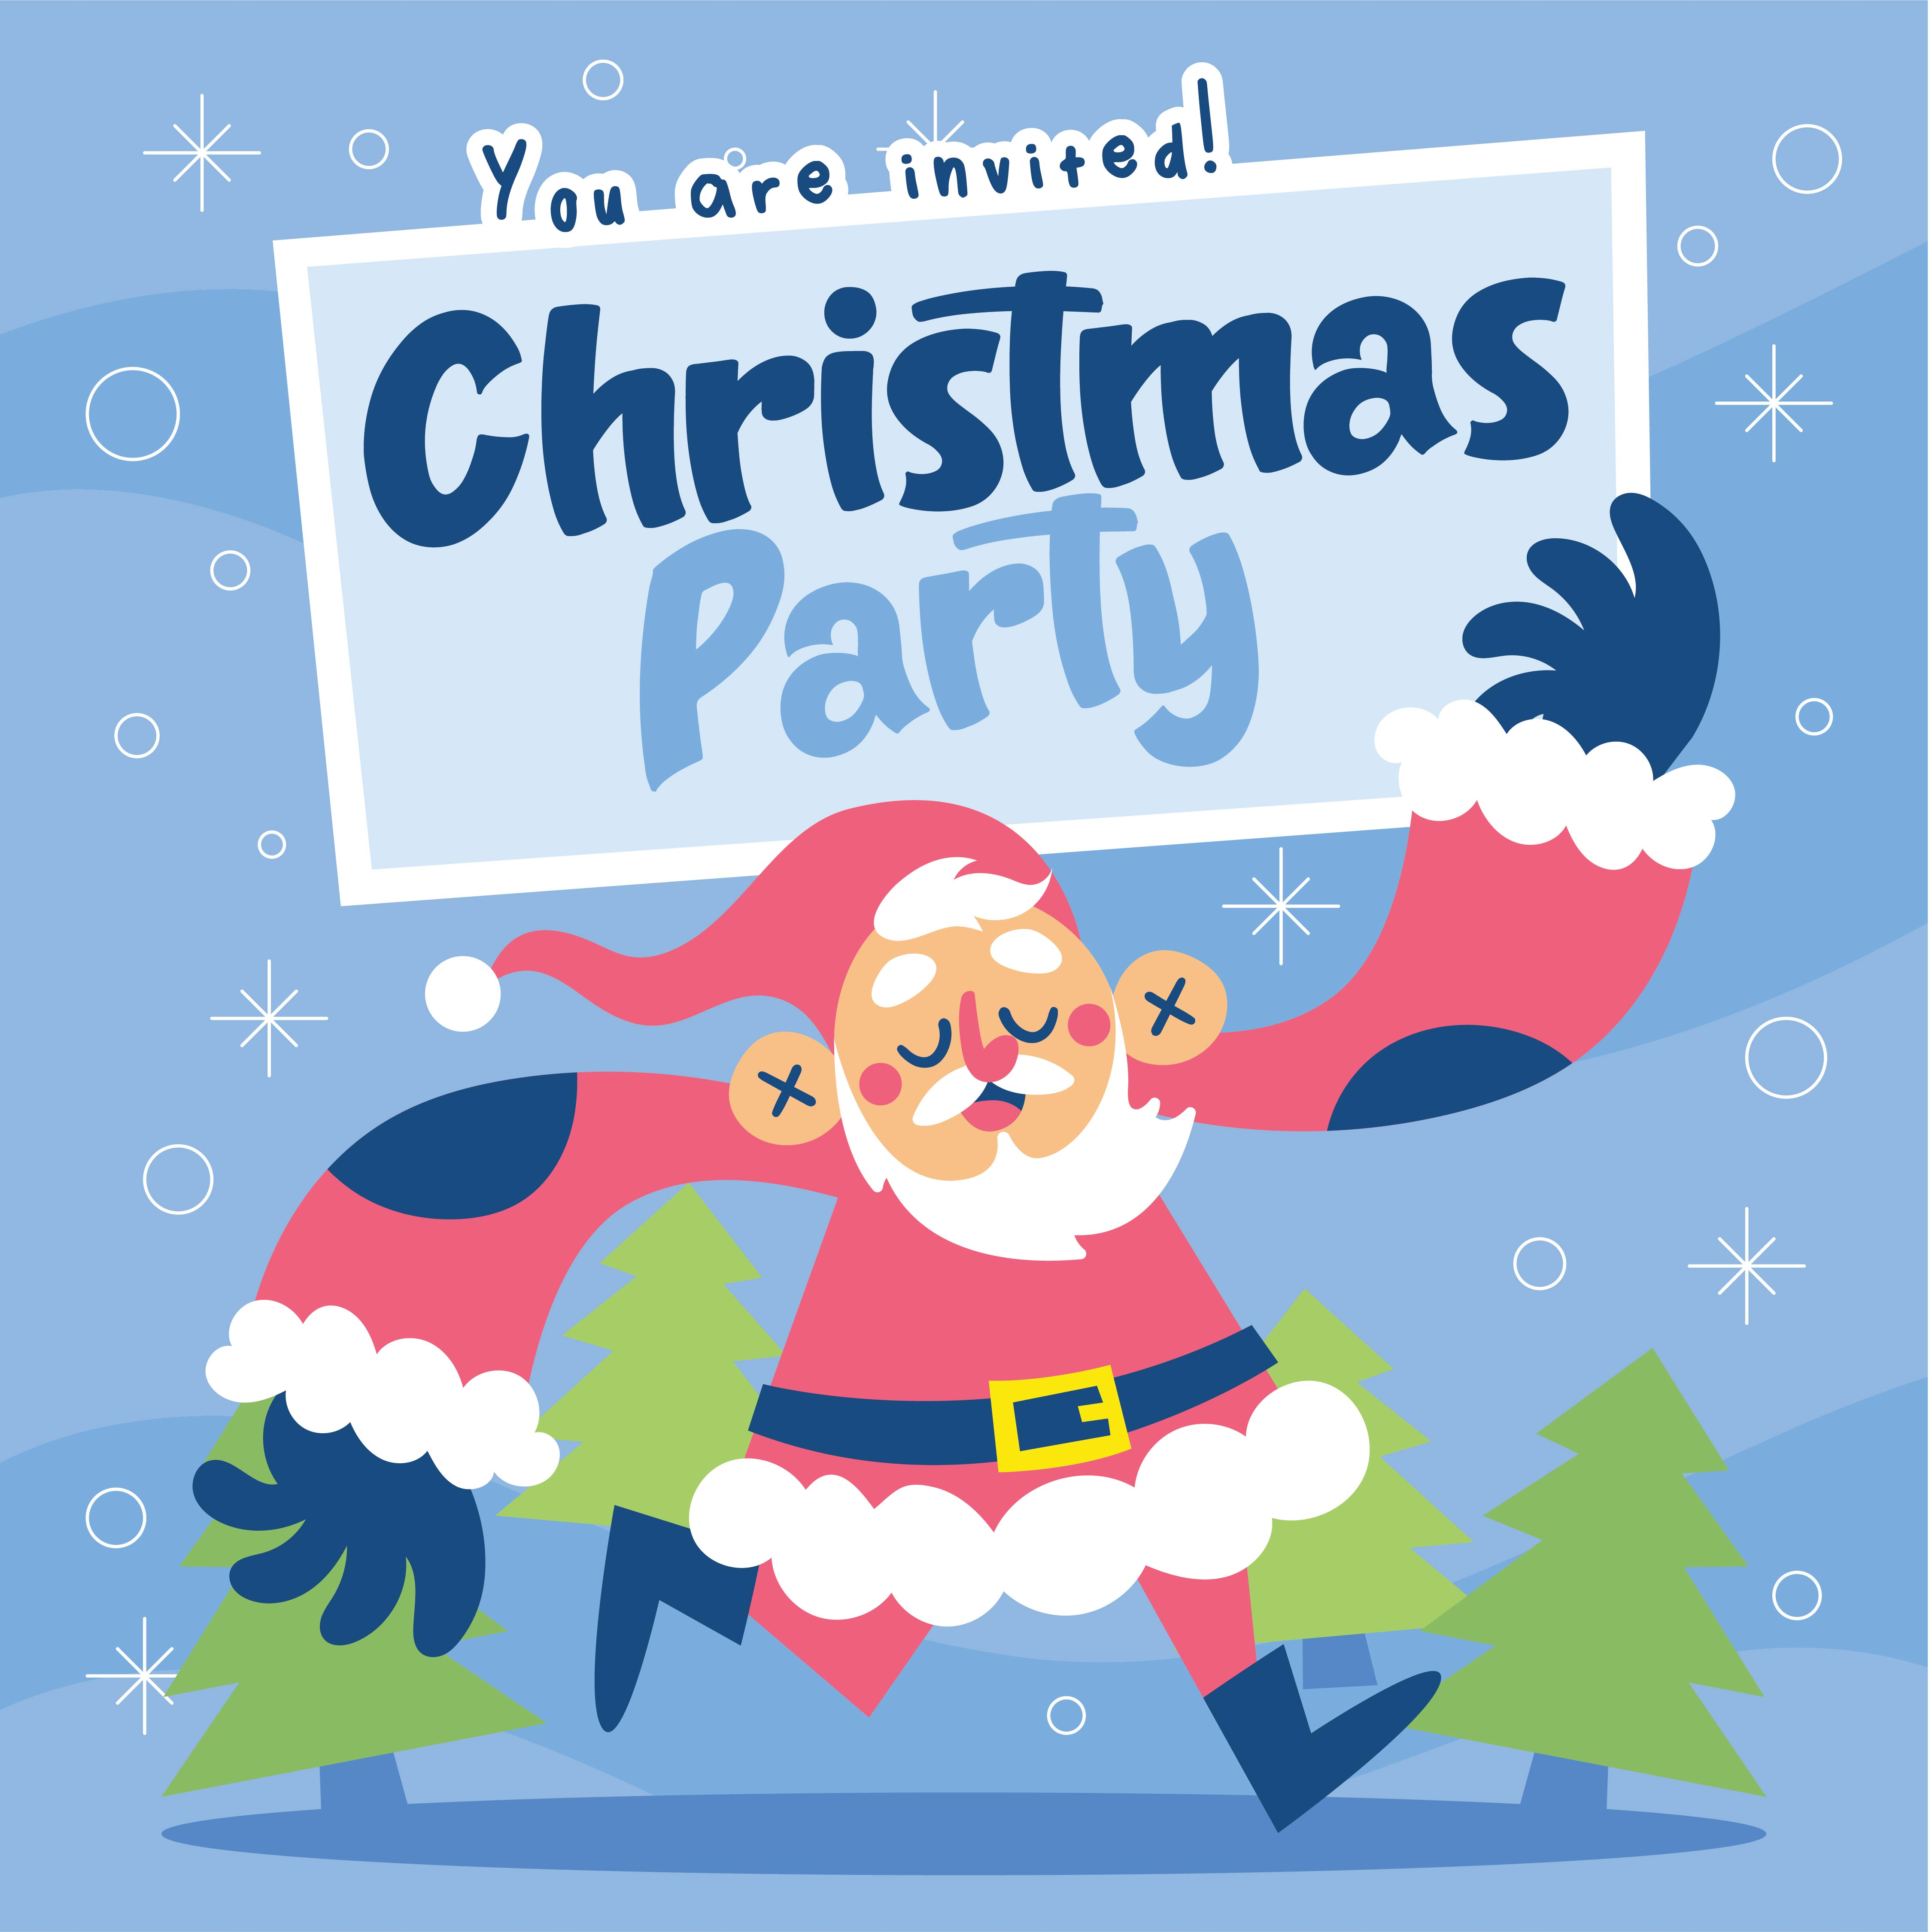 7 Images of Christmas Party Free Printable Template